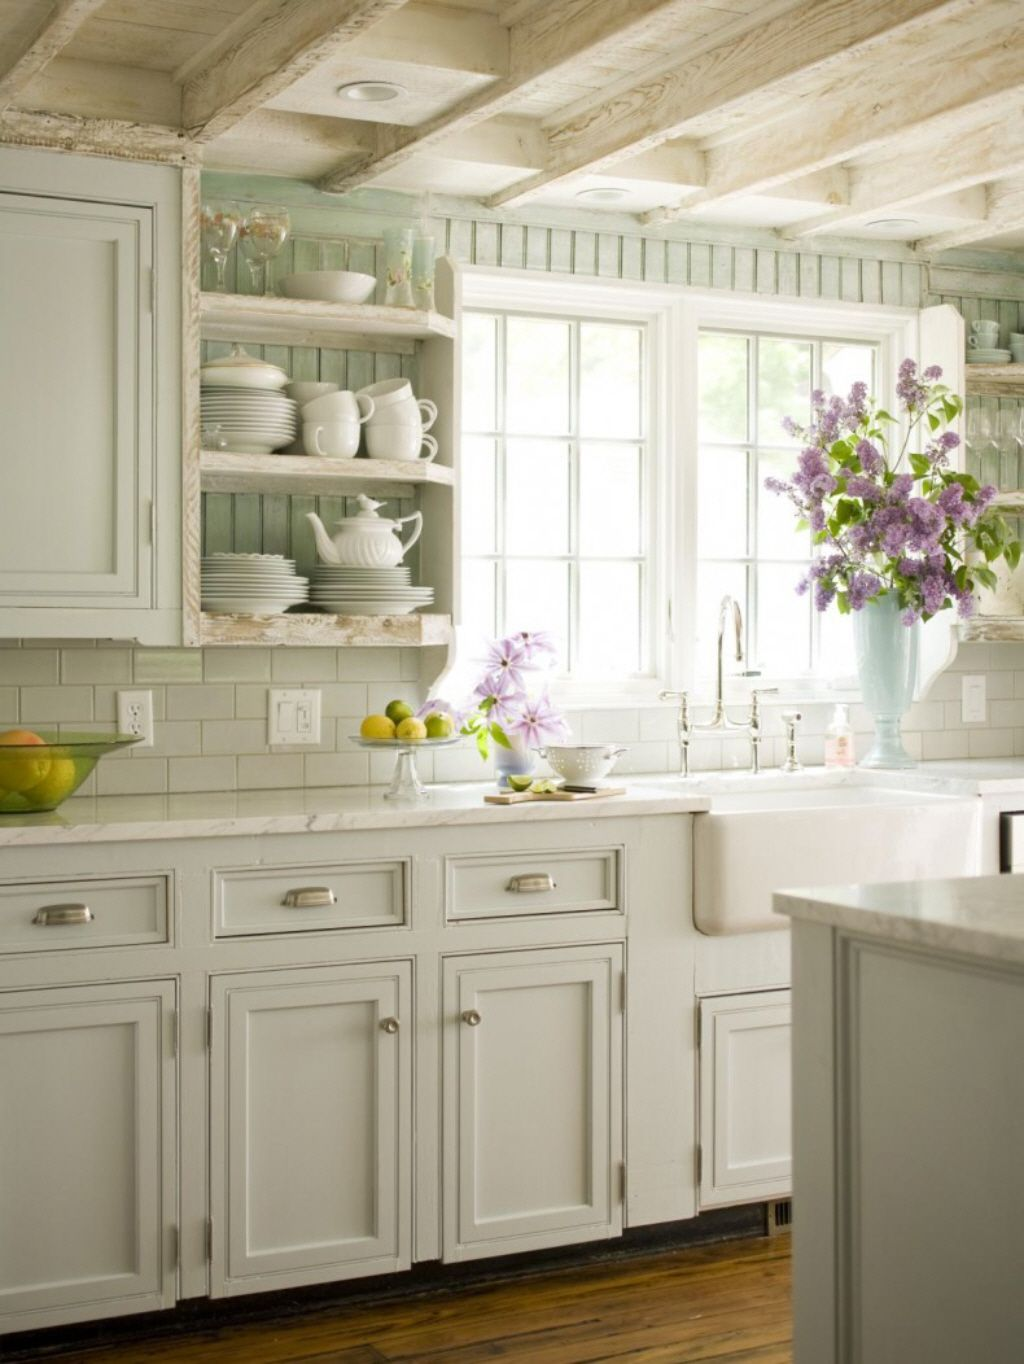 1000+ images about French Country Kitchens: Backsplash and Cabinet ...